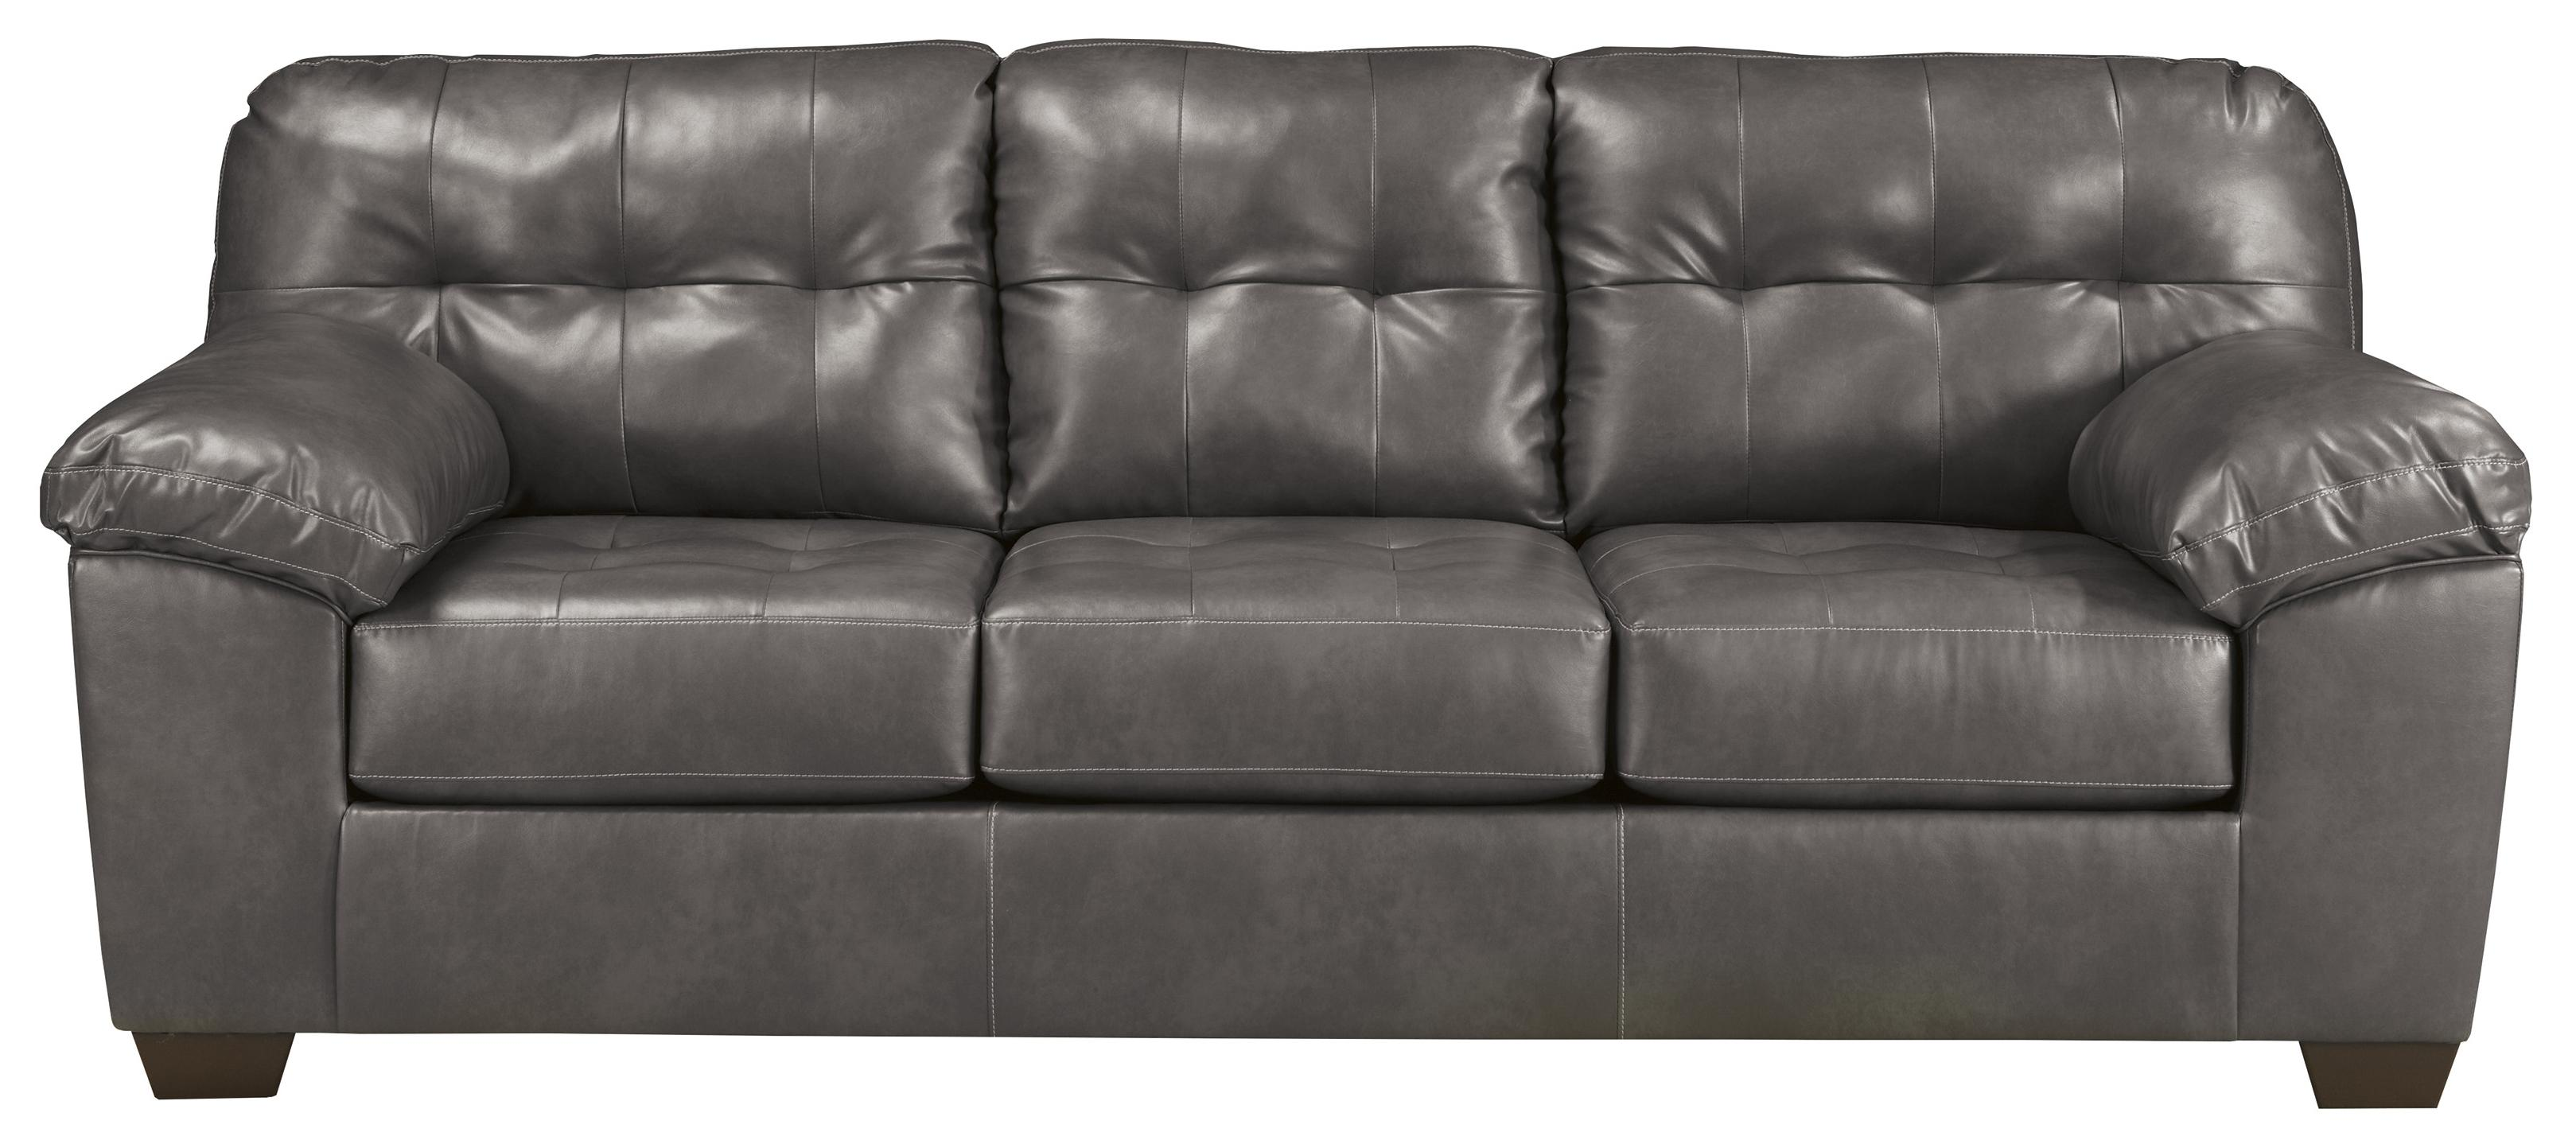 Alliston DuraBlend® - Gray Sofa by Signature Design by Ashley at Value City Furniture